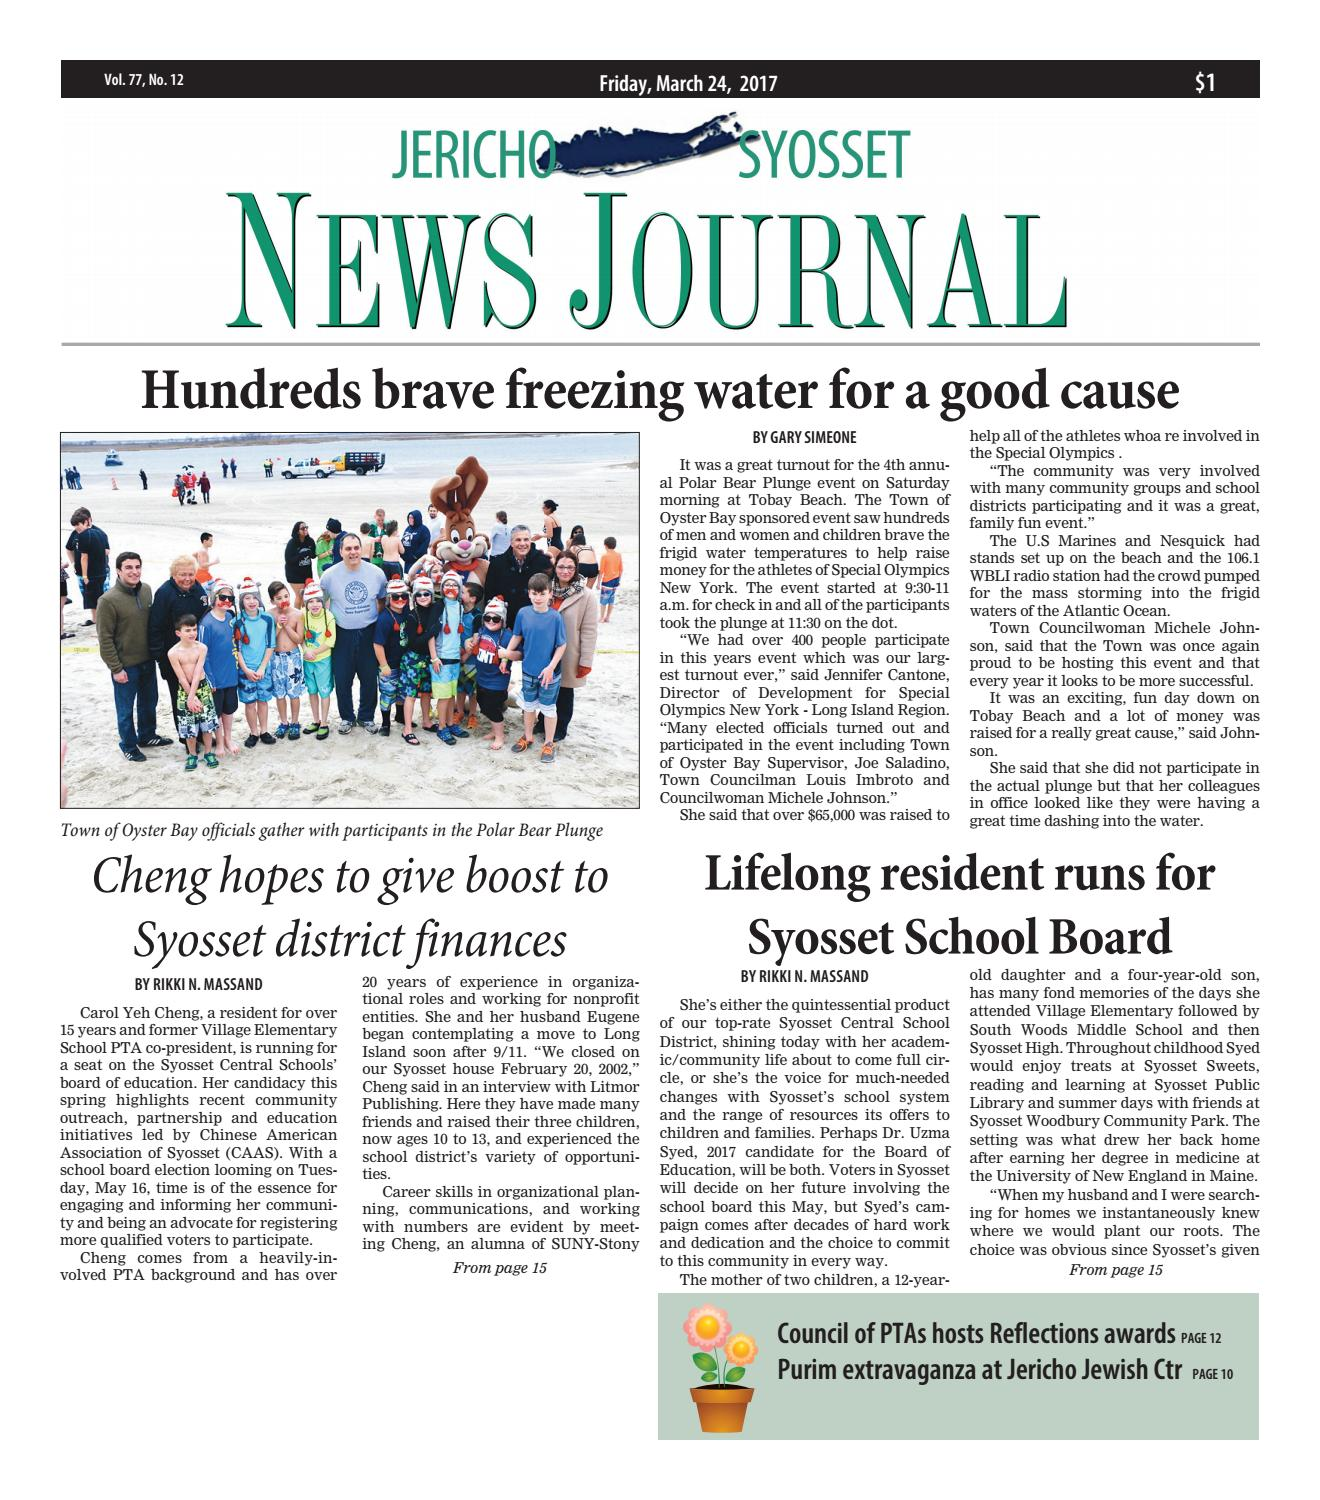 59a7a297d27a The Jericho-Syosset News Journal by Litmor Publishing - issuu